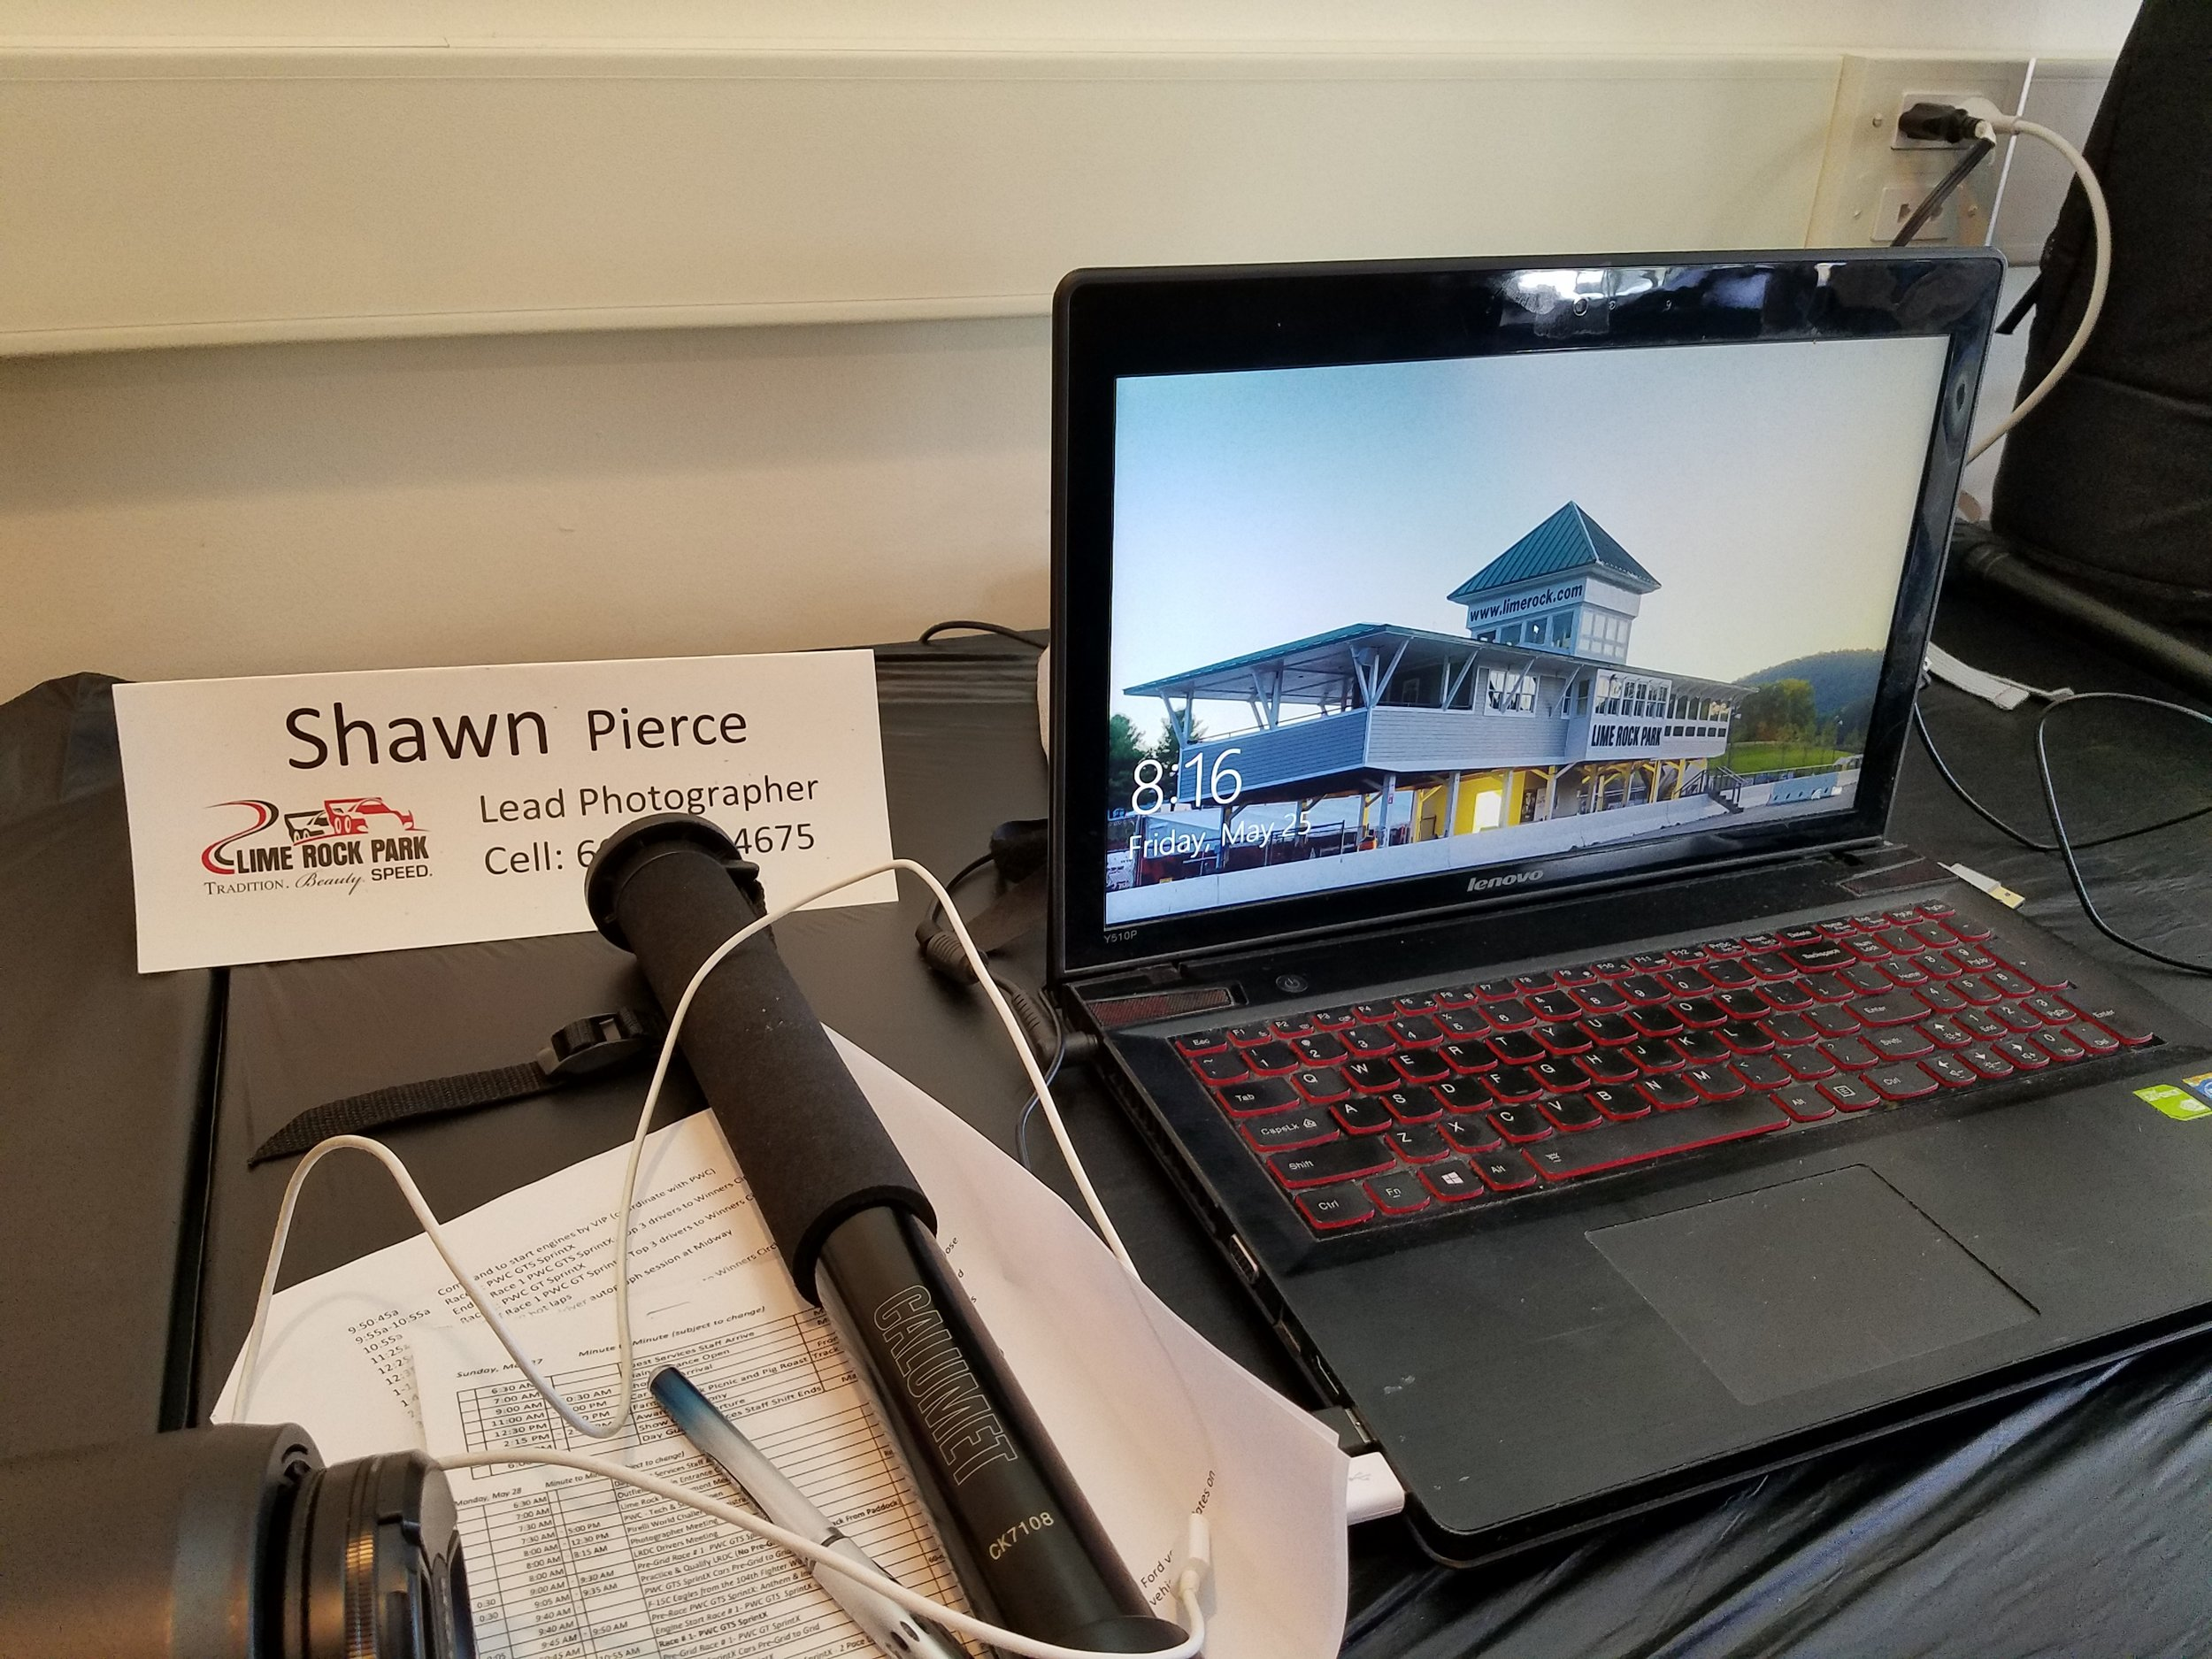 My home base in the media center for the weekend.